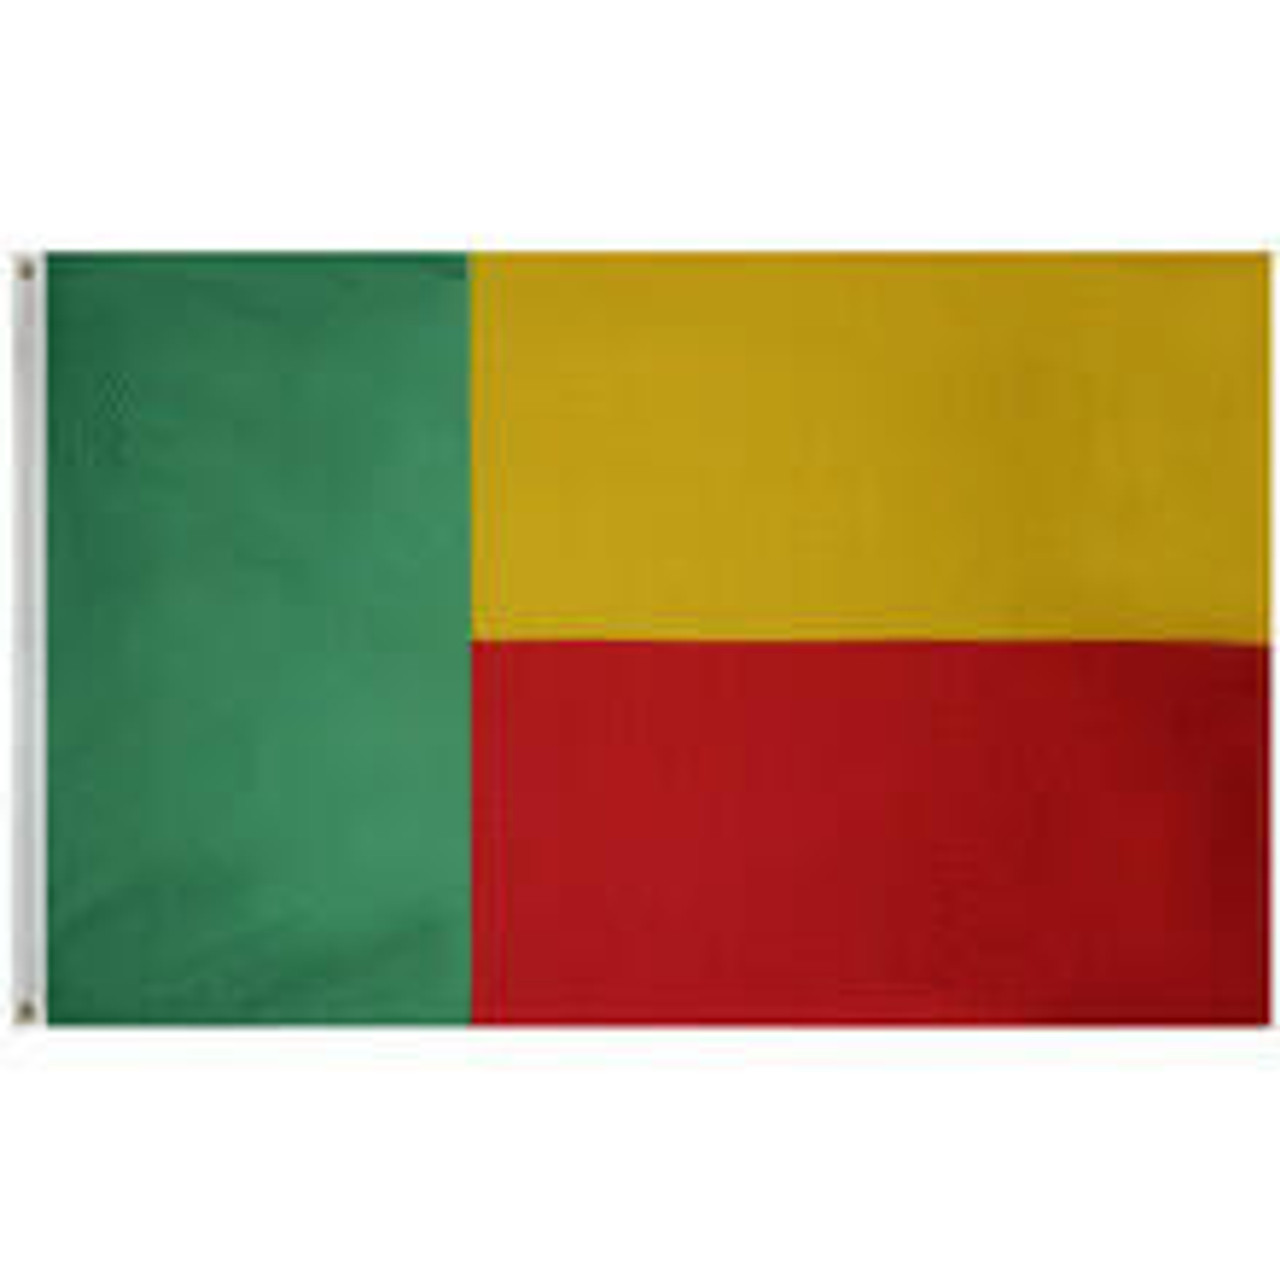 Benin Flag with canvas heading and grommets for attachment. Left 1/3 of the flag is green, the other half gold/red with the gold section in the top half.